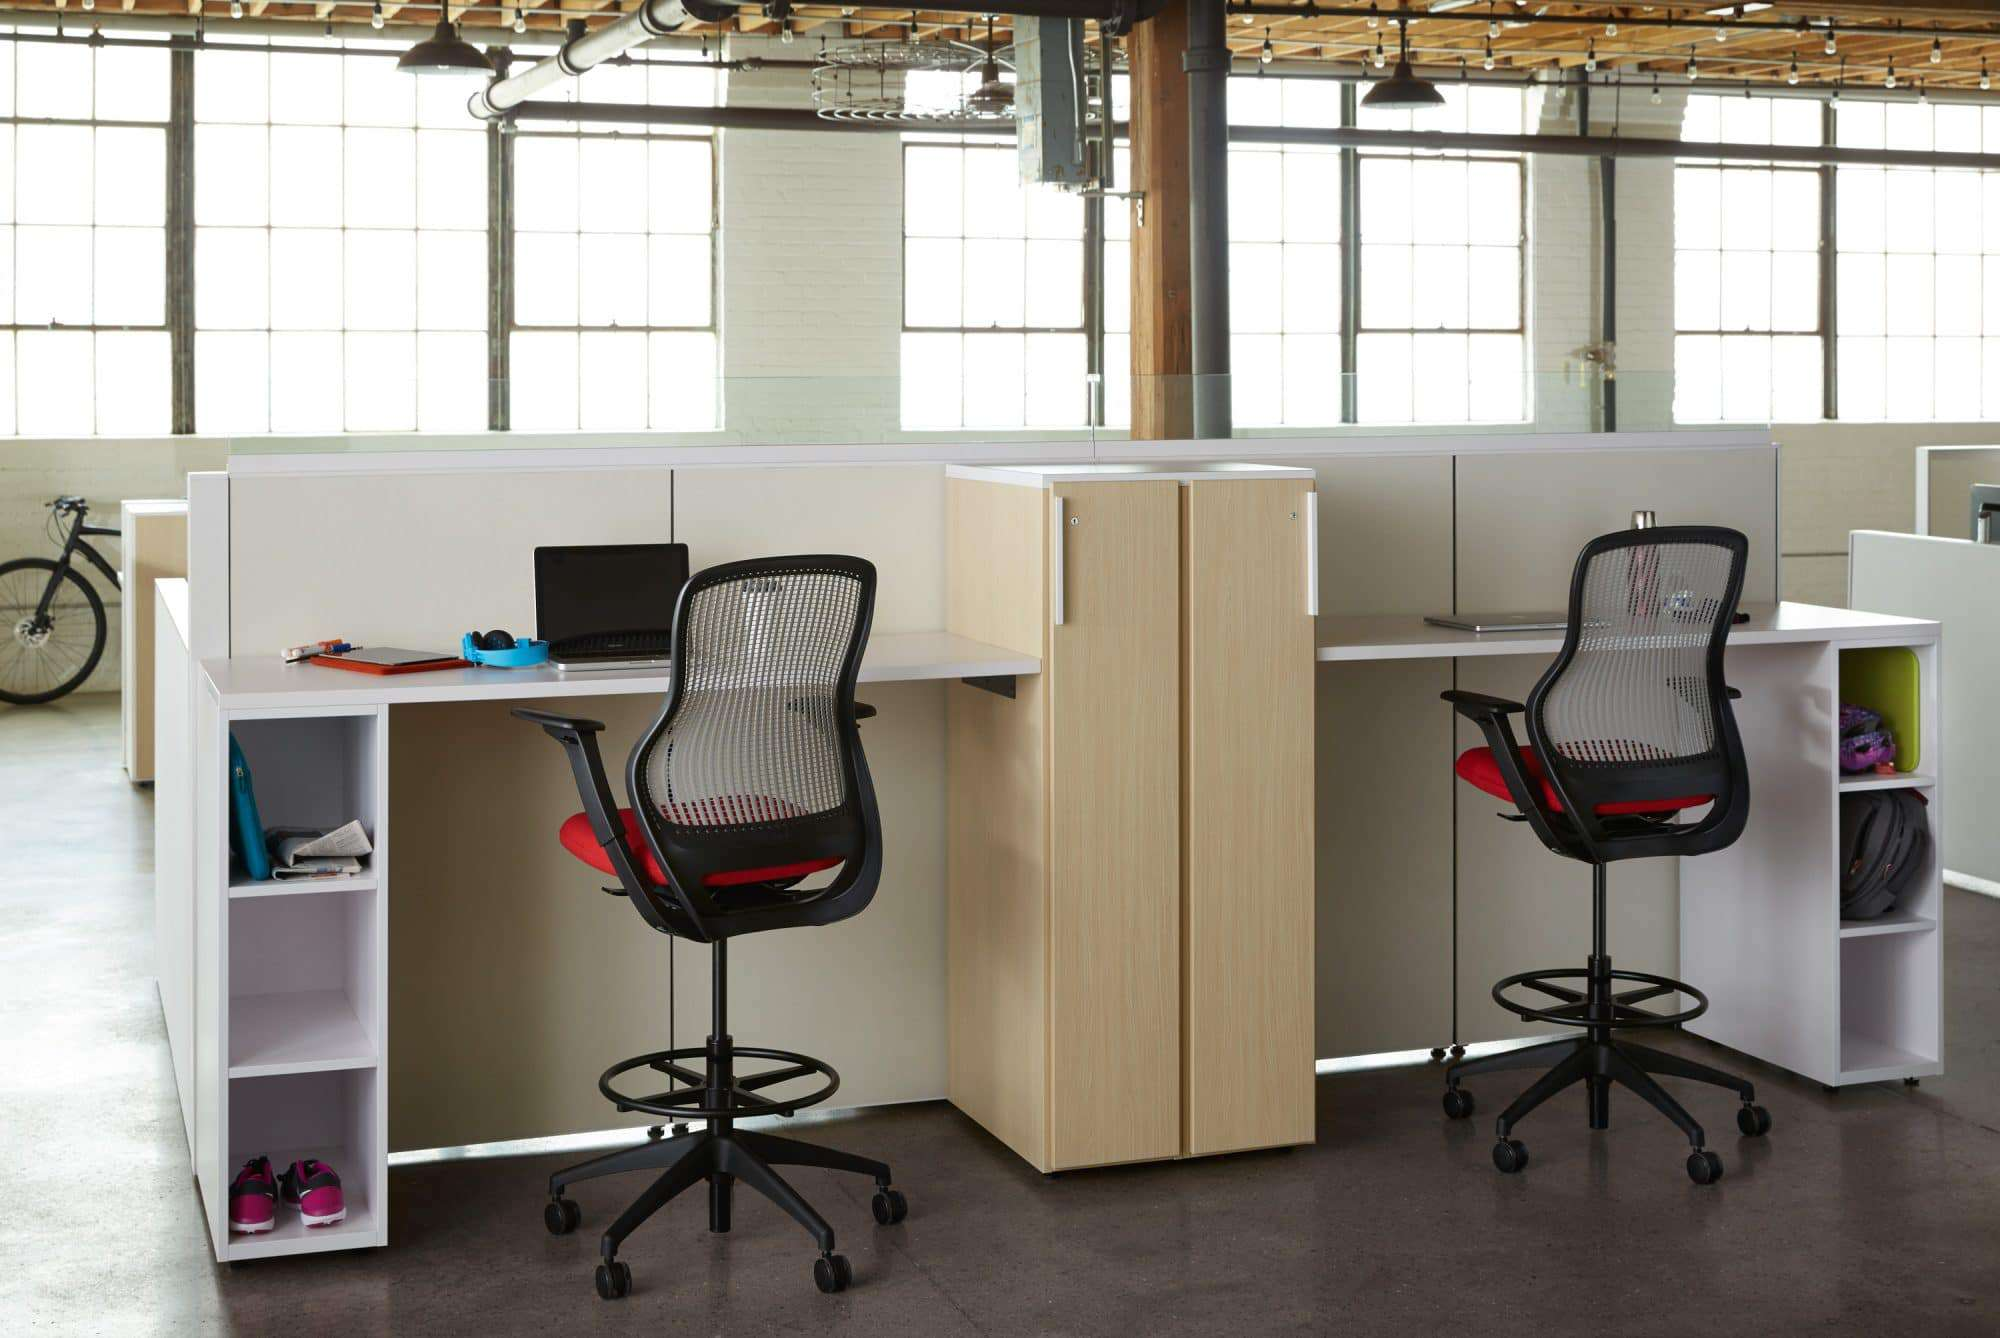 office space furniture. Systems Furniture\u0027s Office Space Furniture S